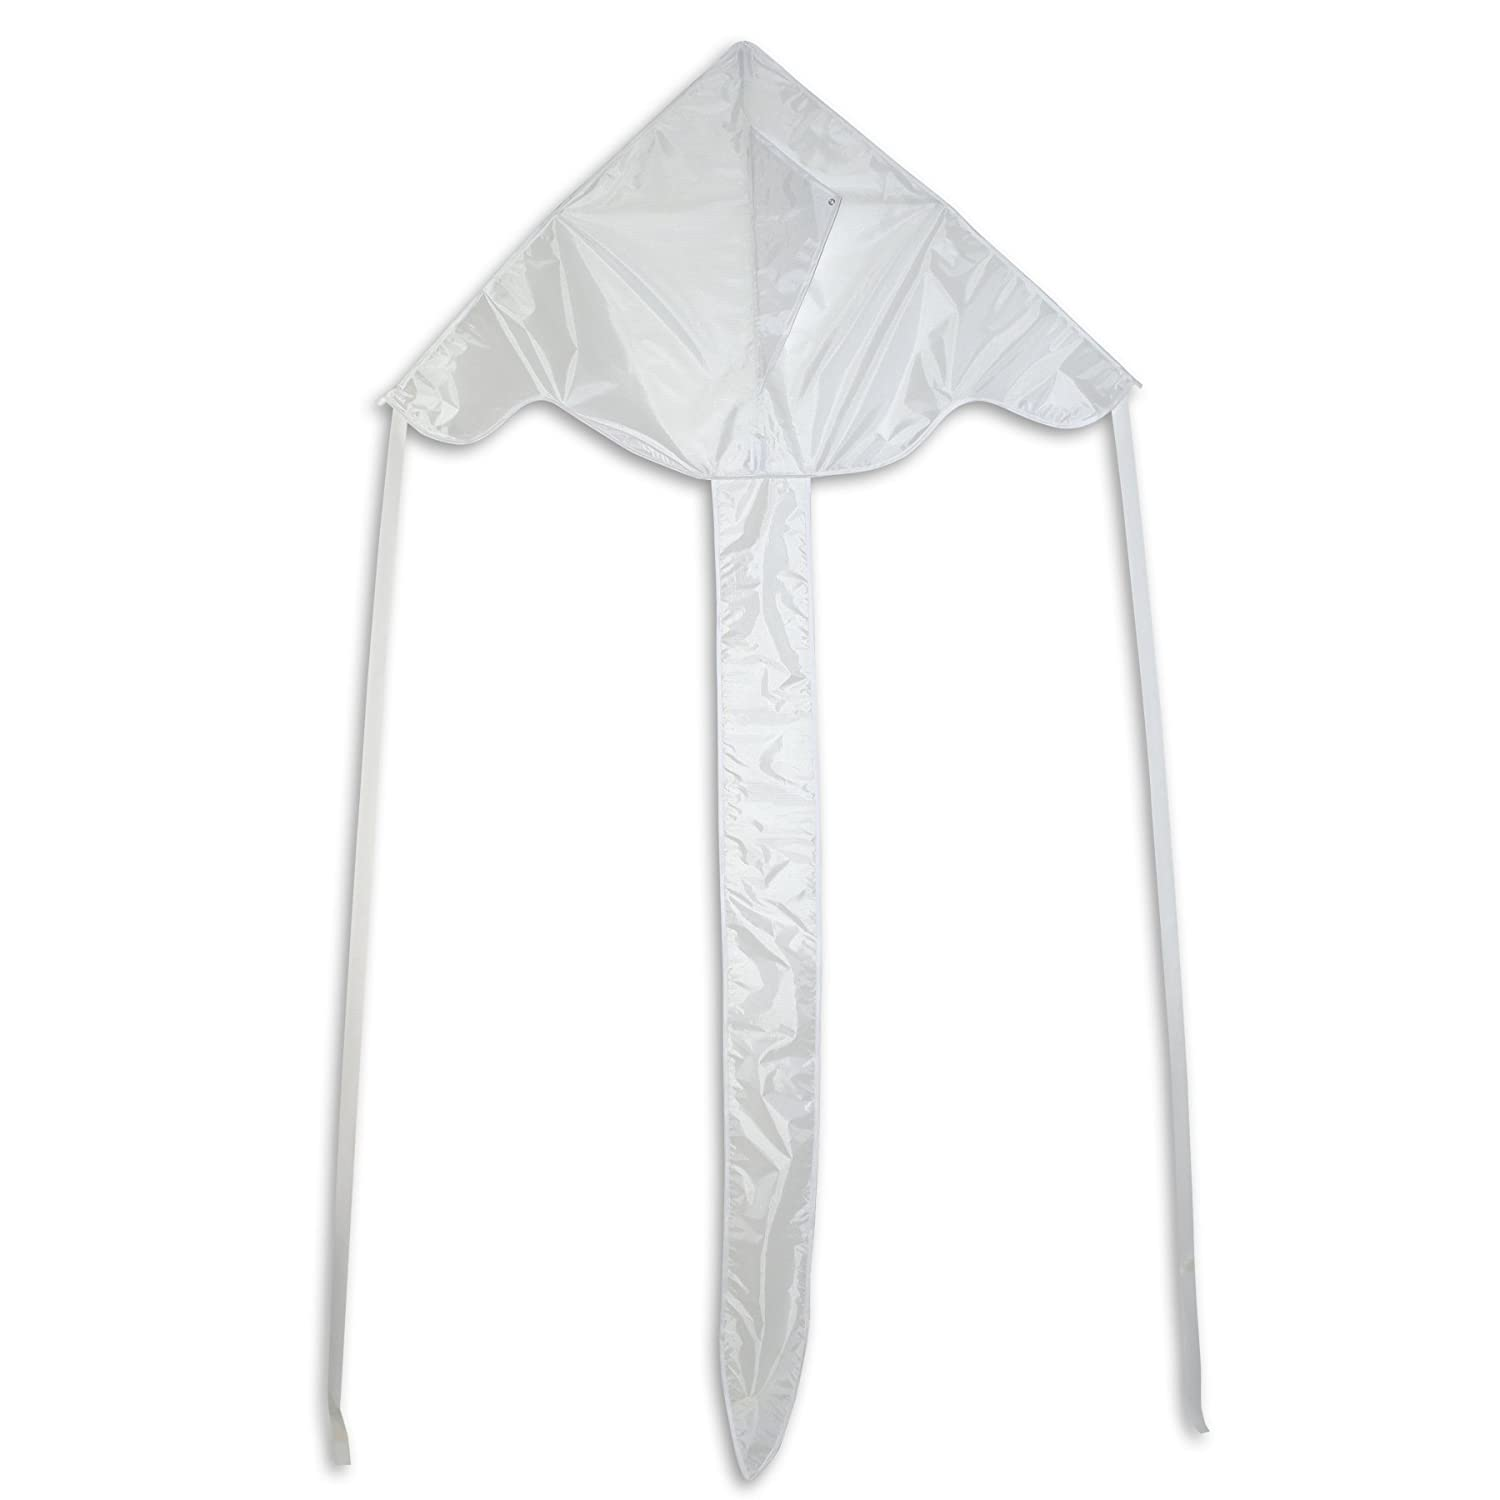 In the Breeze White 43 Inch Fly-Hi Kite - Single Line - Ripstop Fabric - Includes Kite Line and Bag 3214